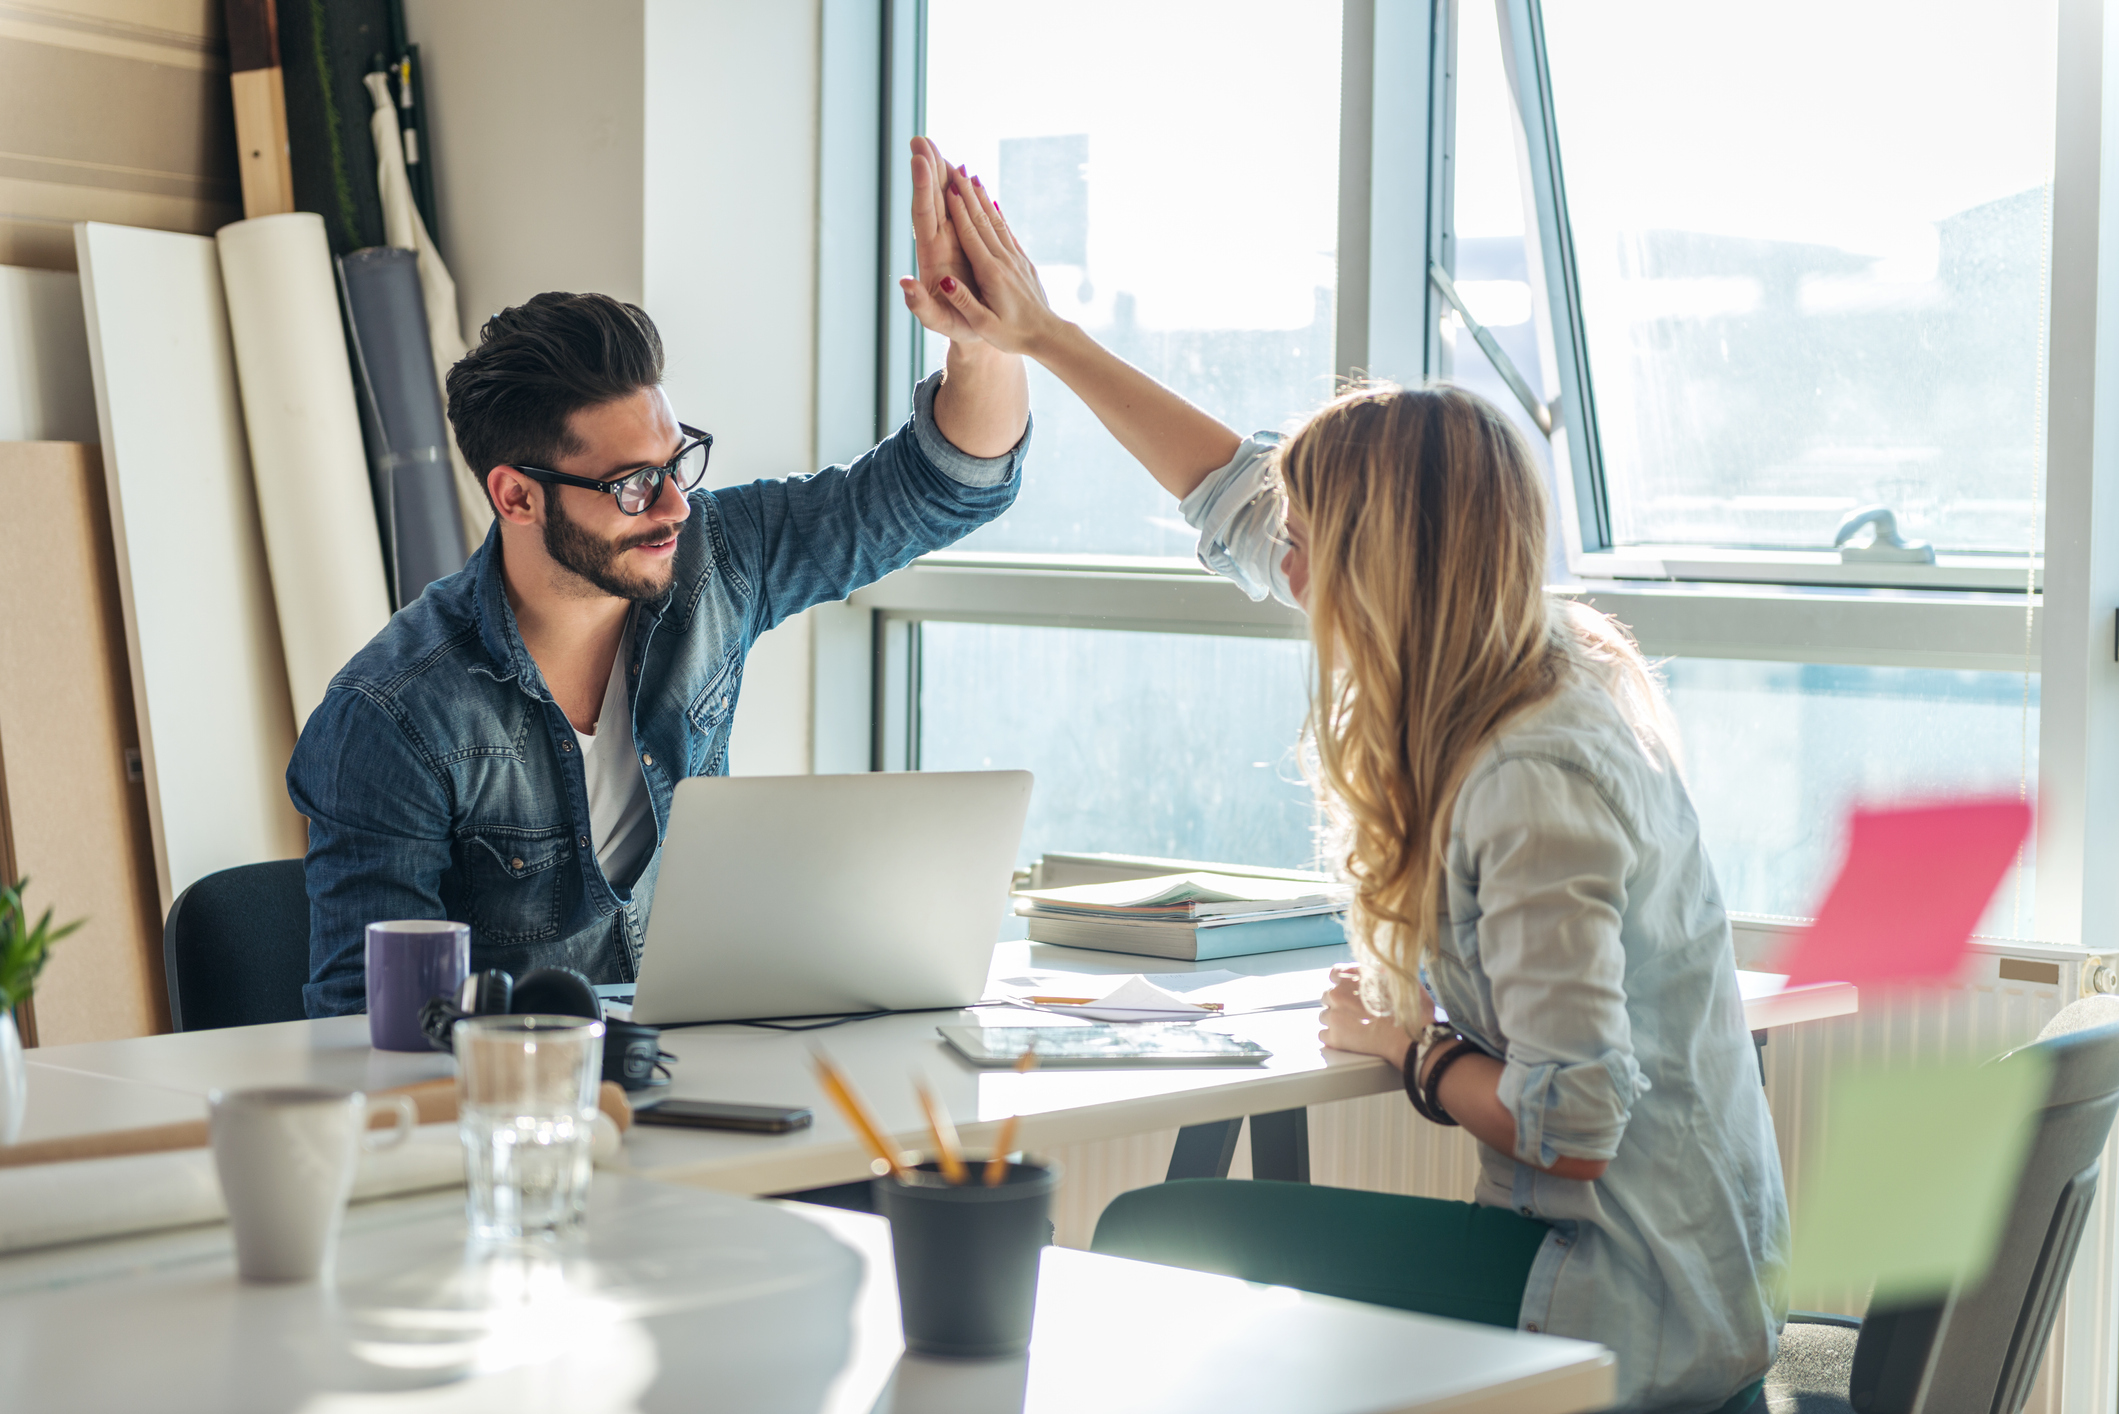 Happy co-workers high-fiving celebrating a successful marketing campaign